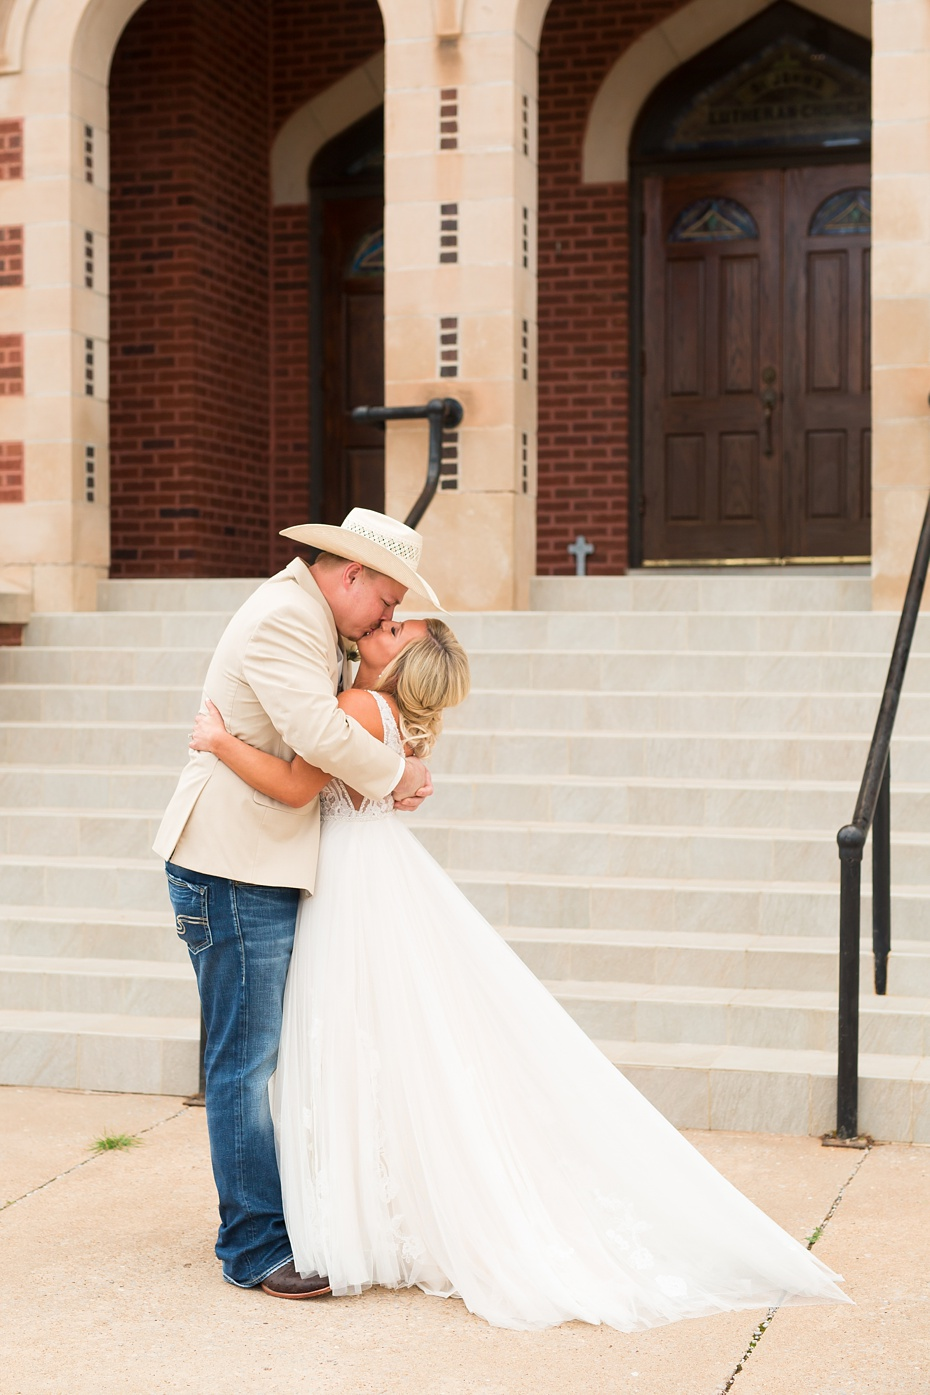 wedding_truly_you_photography_enid_photographer-4_web.jpg